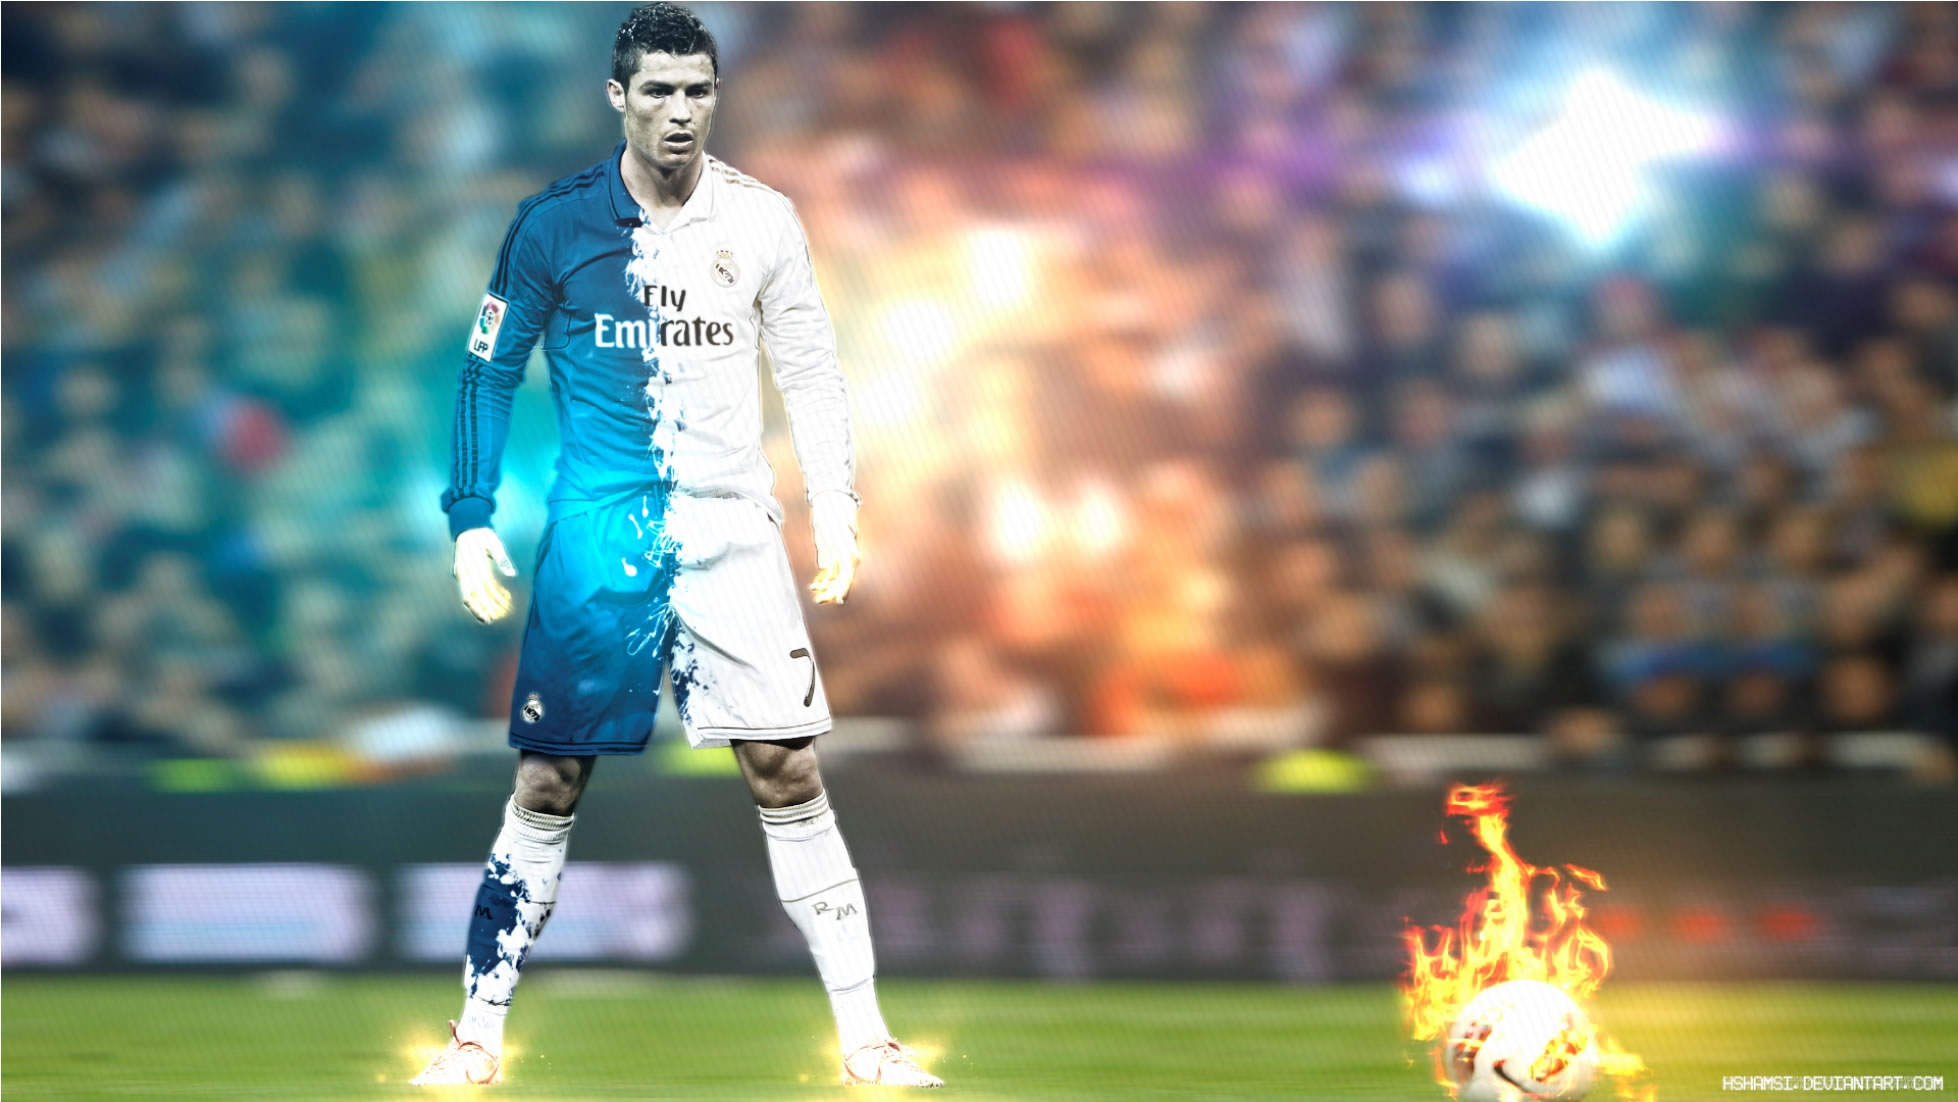 cristiano ronaldo wallpaperhshamsi - cristiano ronaldo wallpapers